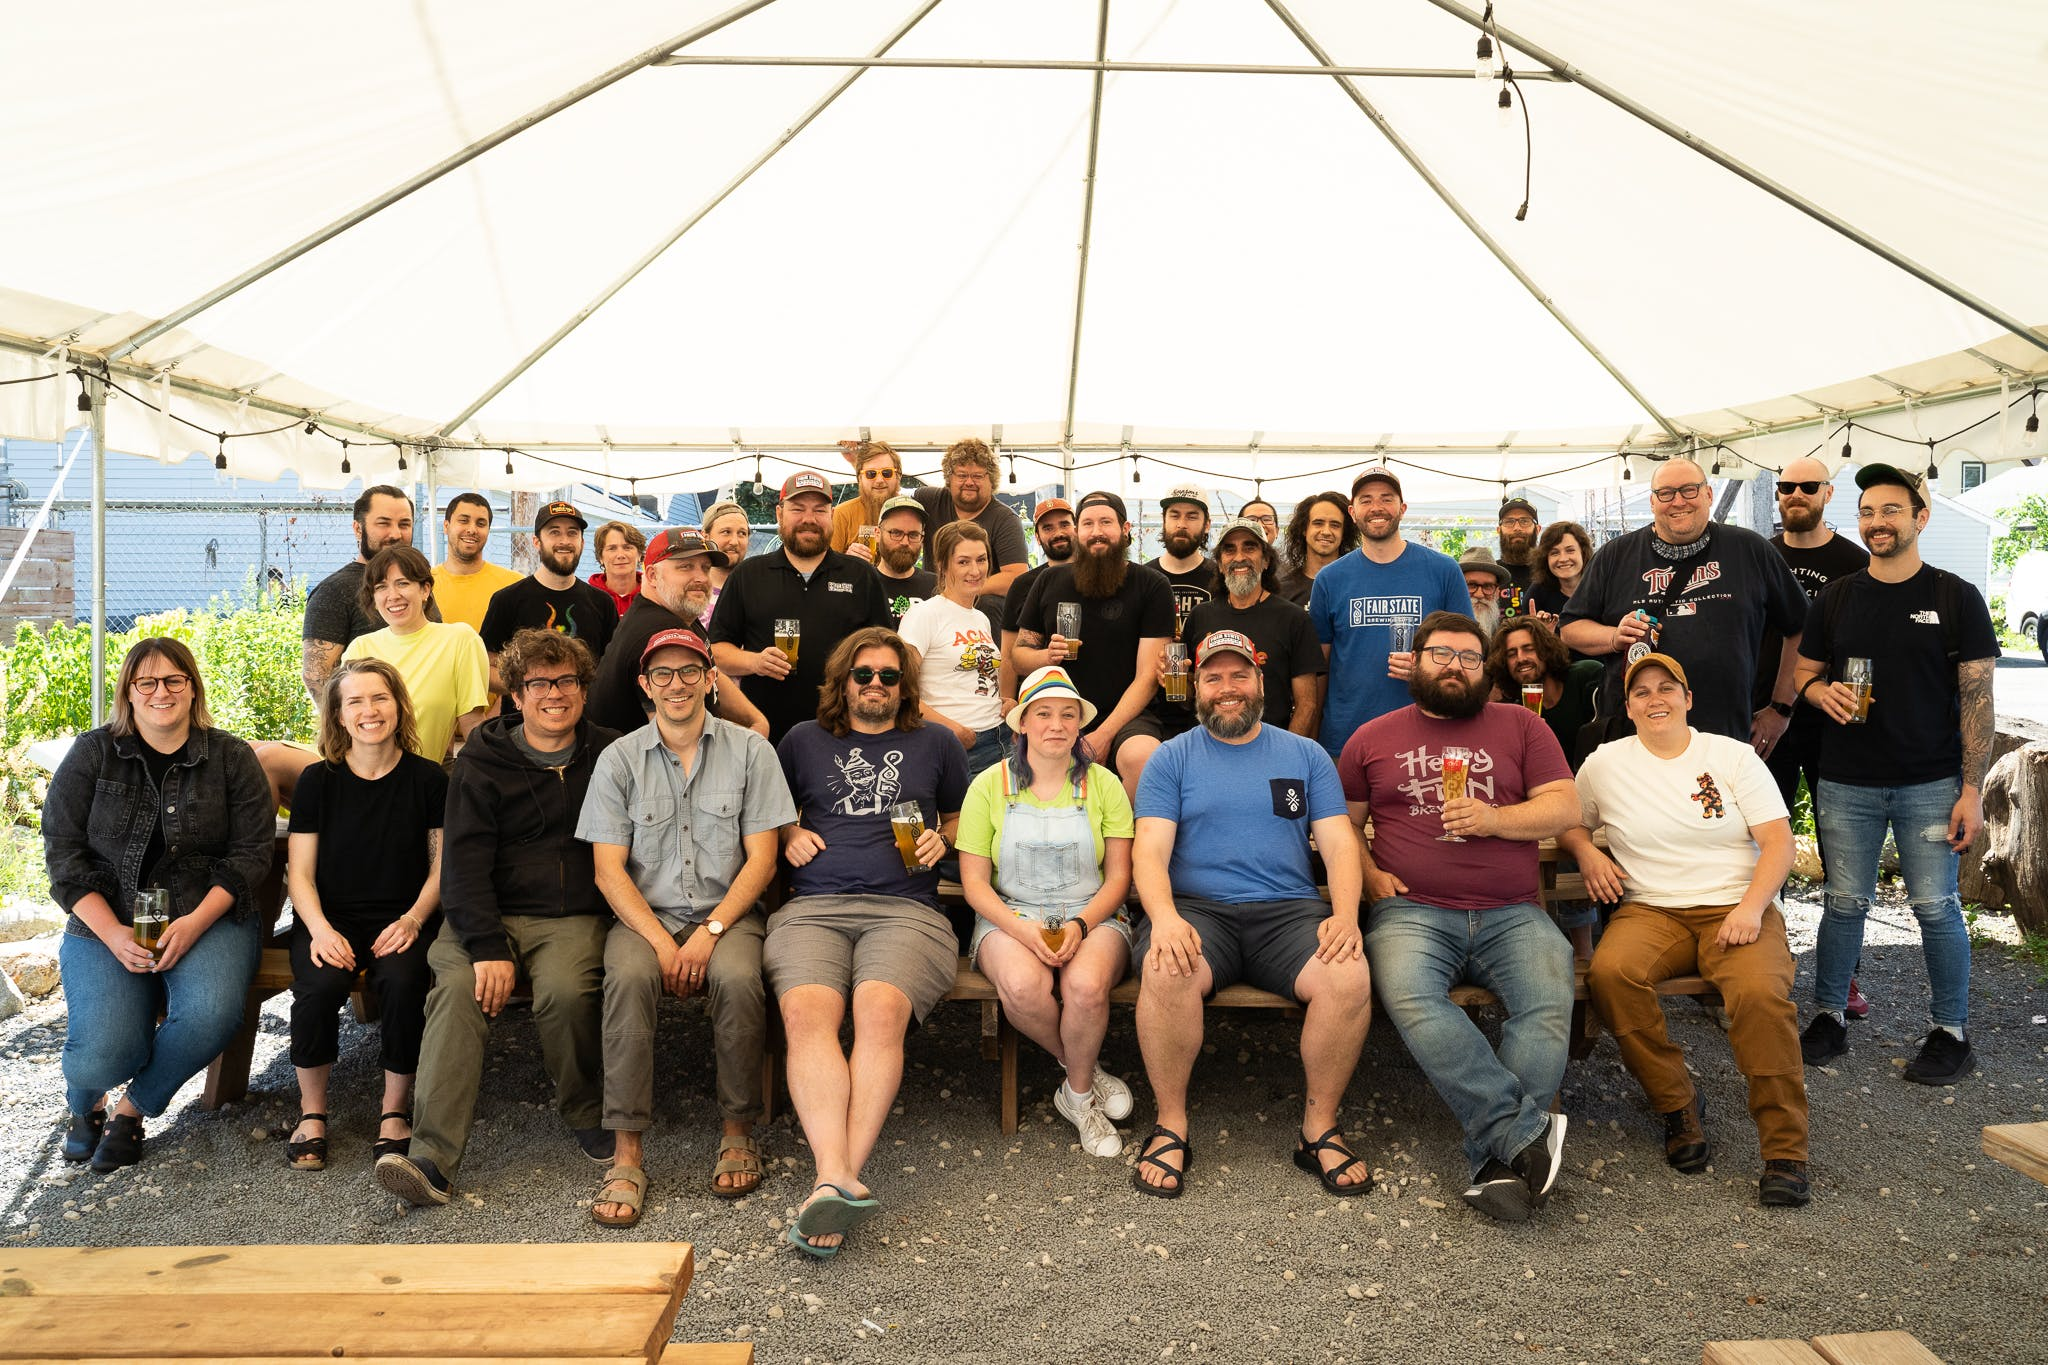 Photo of our full staff outside under a tent in the beer garden.